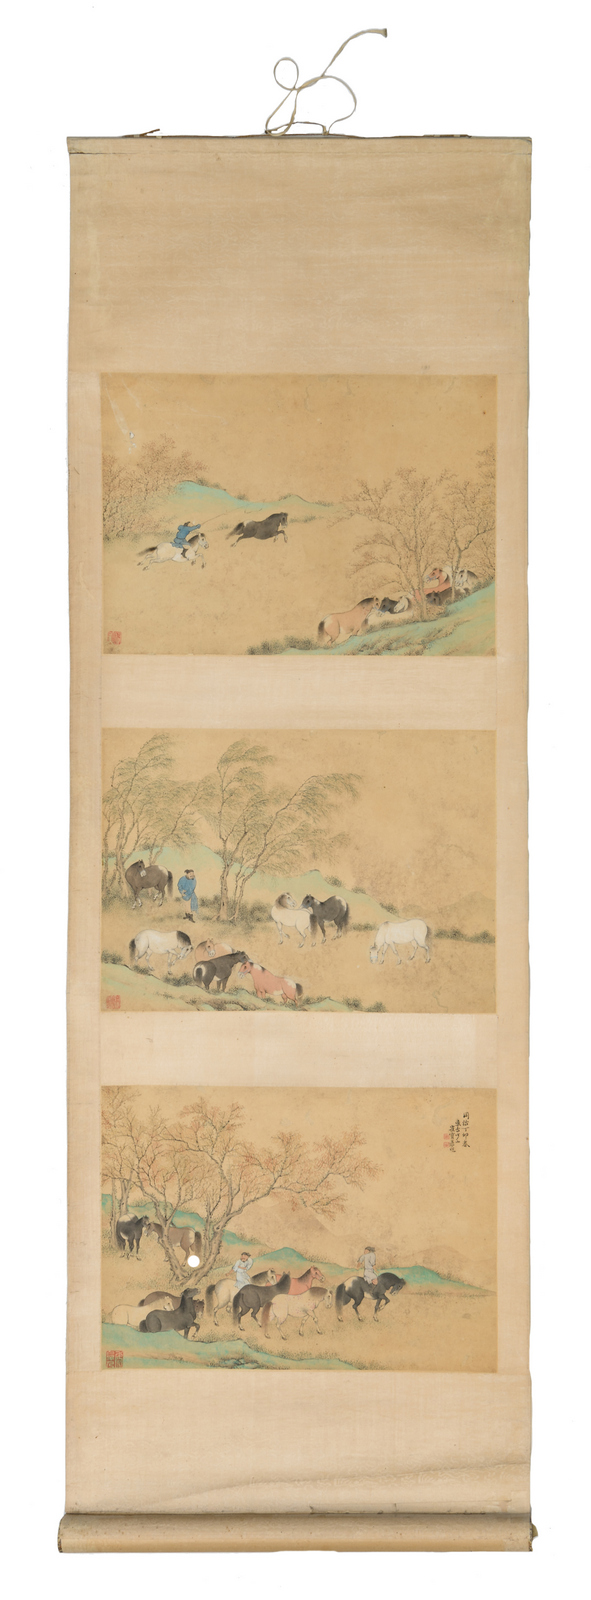 A Chinese scroll, watercolour on paper,depicting three horse taming scenes, about 1900, 38 x 100 cm (without mount) - 46,5 x 142 (with mount)